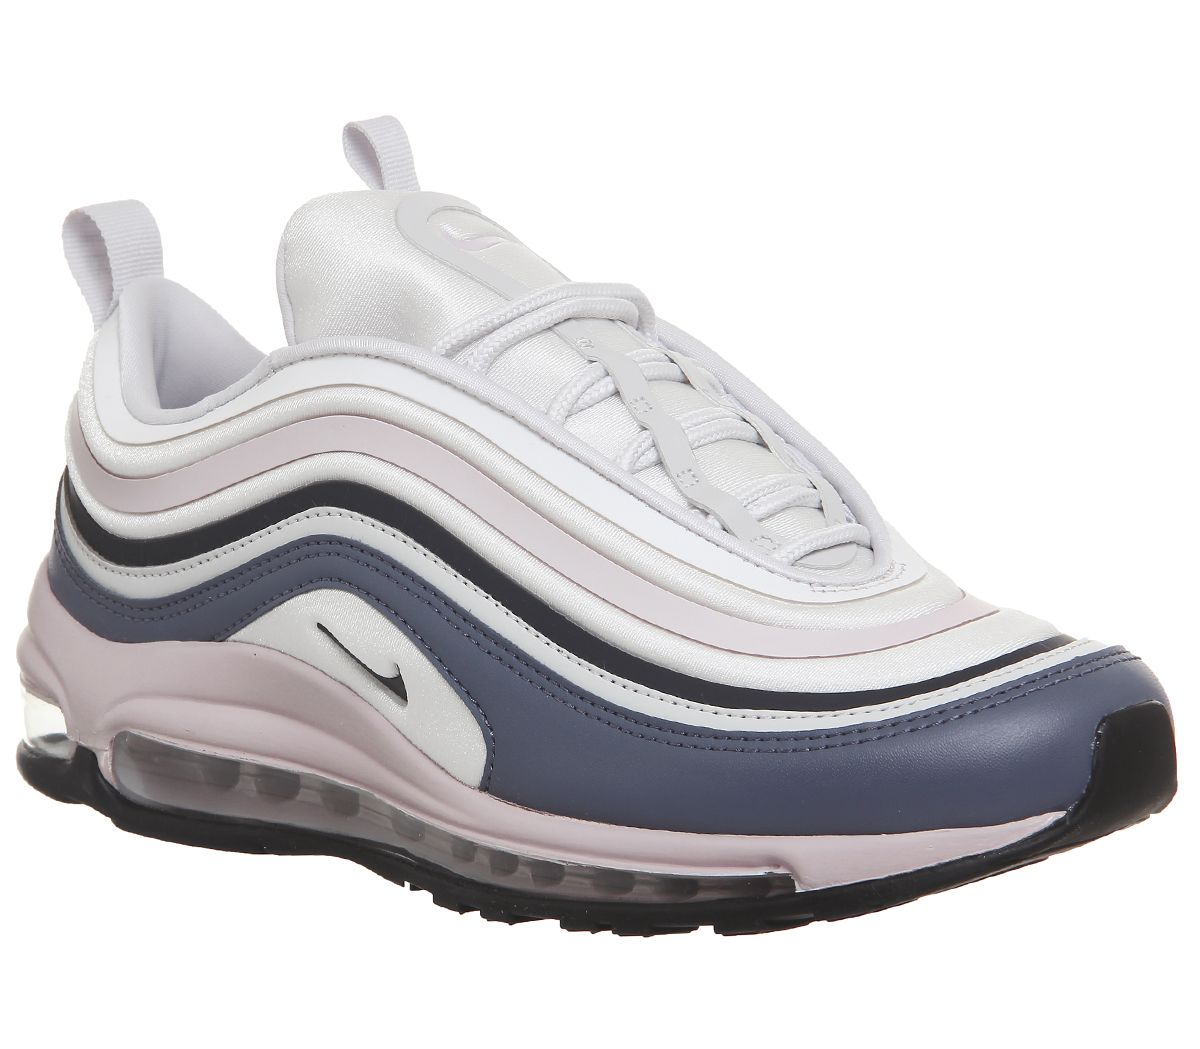 9c918ca1f2 Nike Air Max 97 Ul Trainers Vast Grey Obsidian Pink - Hers trainers